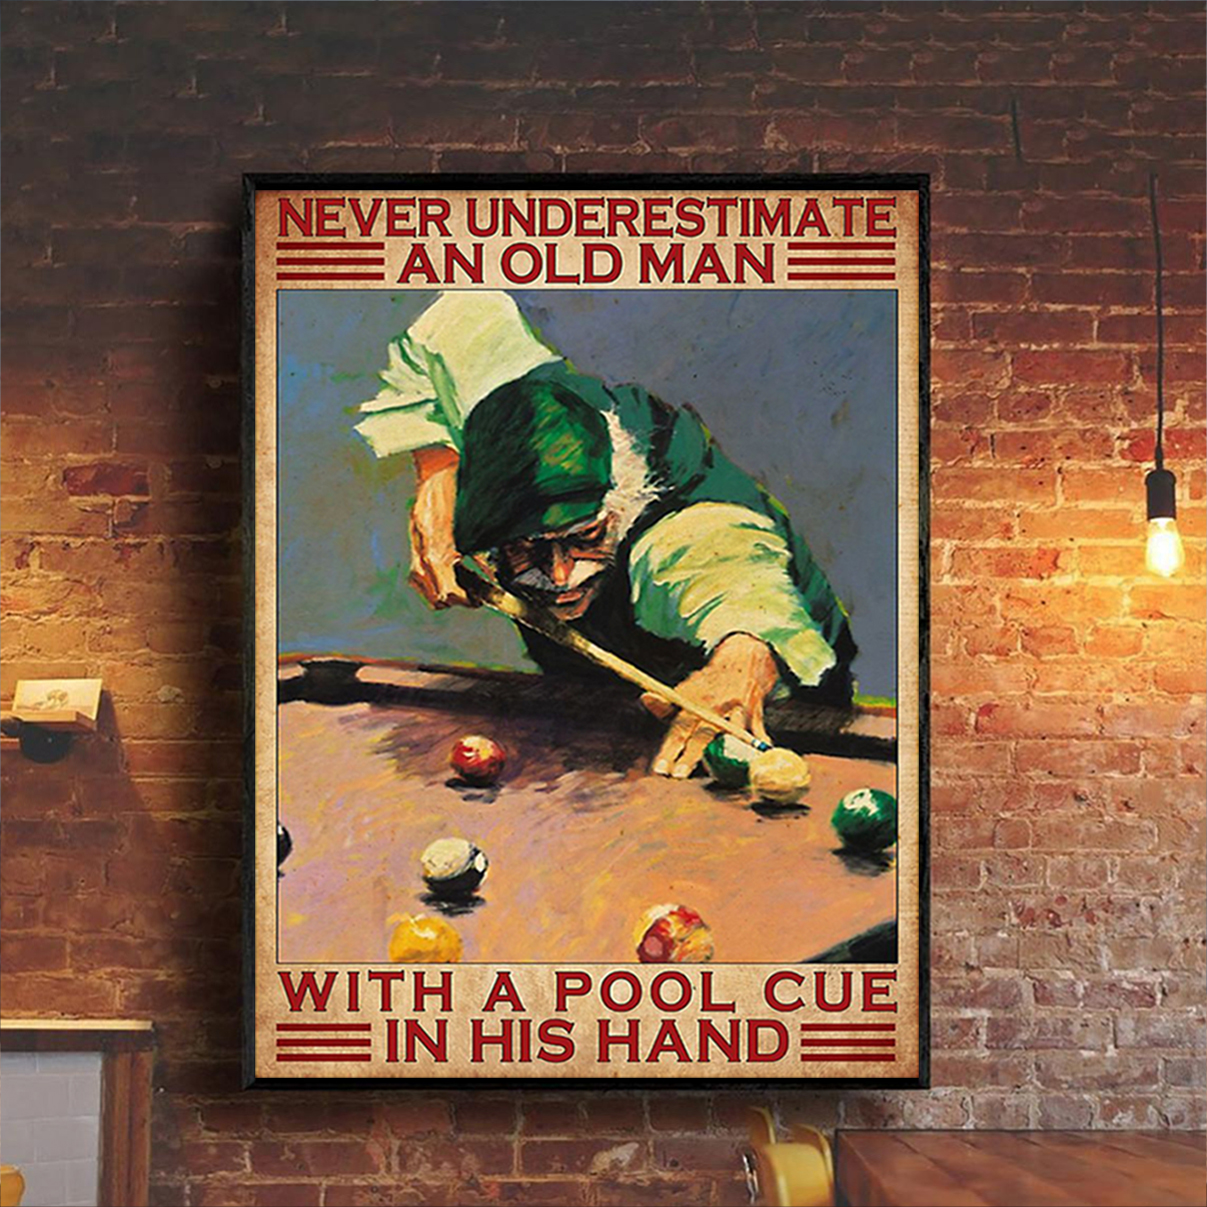 Never underestimate an old man with a pool cue in his hand poster A3